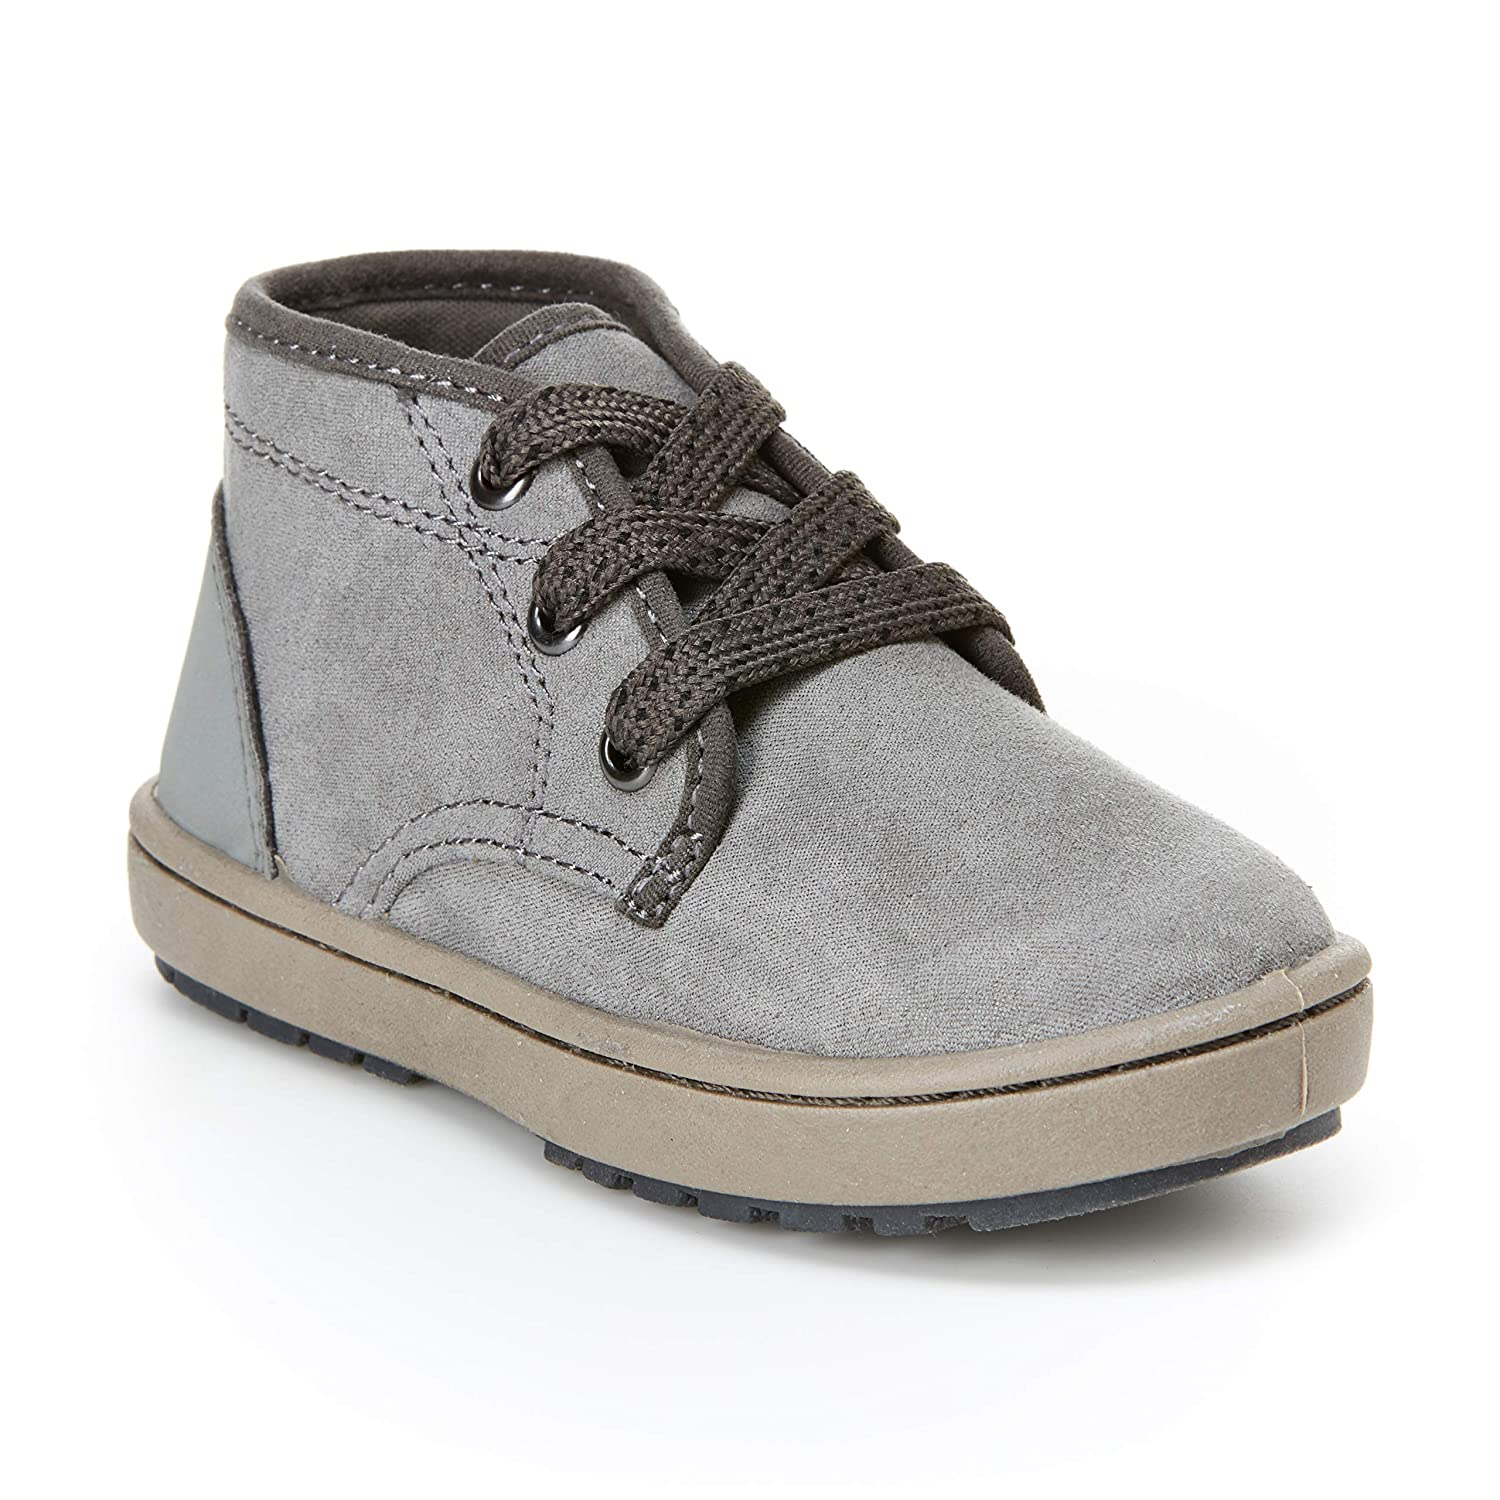 Simple Joys by Carter's Toddler and Little Boys' (1-8 yrs) Noah Chukka Boot Simple Joys by Carter' s SJF1811G